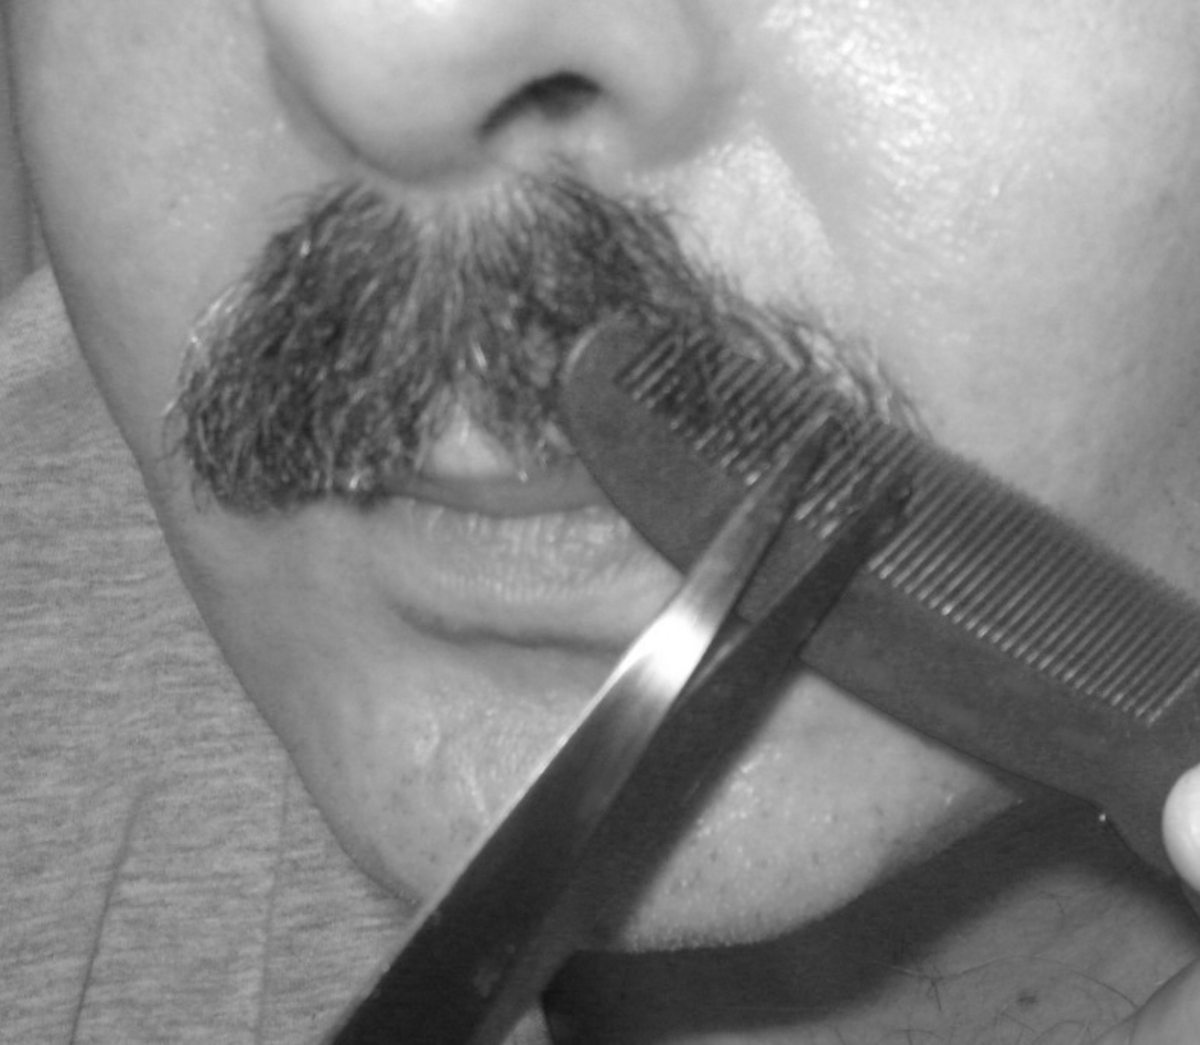 Thinning a mustache: Hold the comb upside down and push it under the mustache.